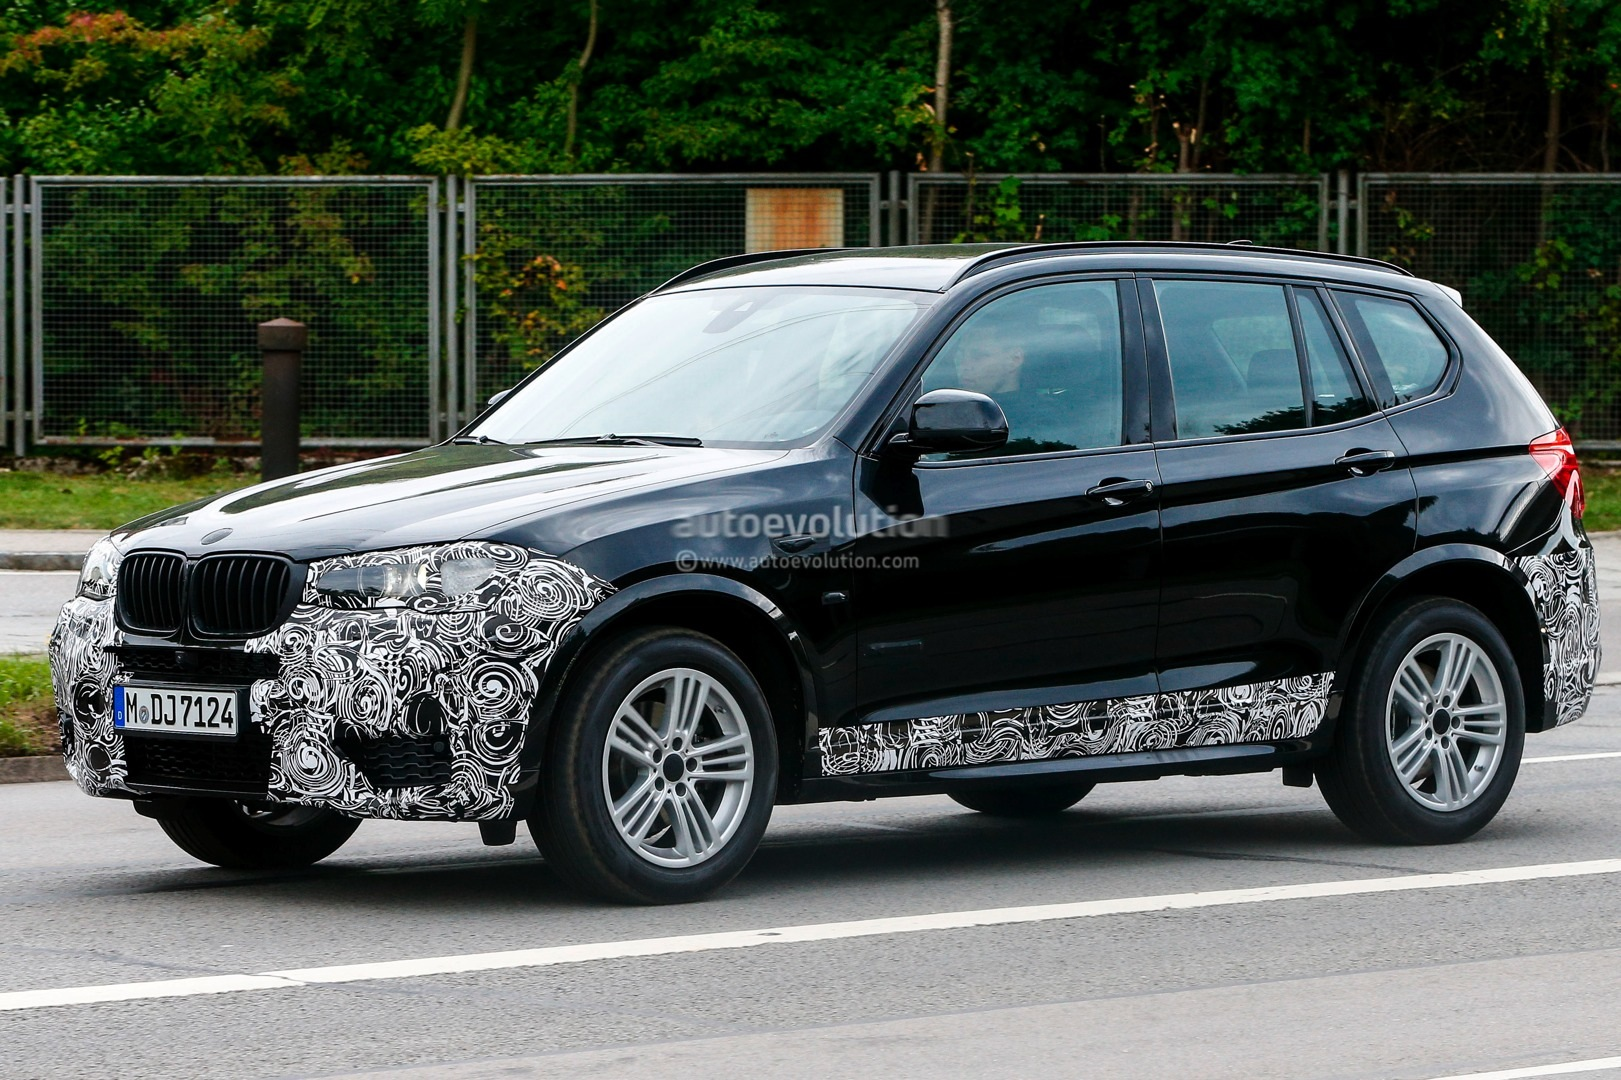 spyshots 2015 bmw x3 facelift has new headlights autoevolution. Black Bedroom Furniture Sets. Home Design Ideas